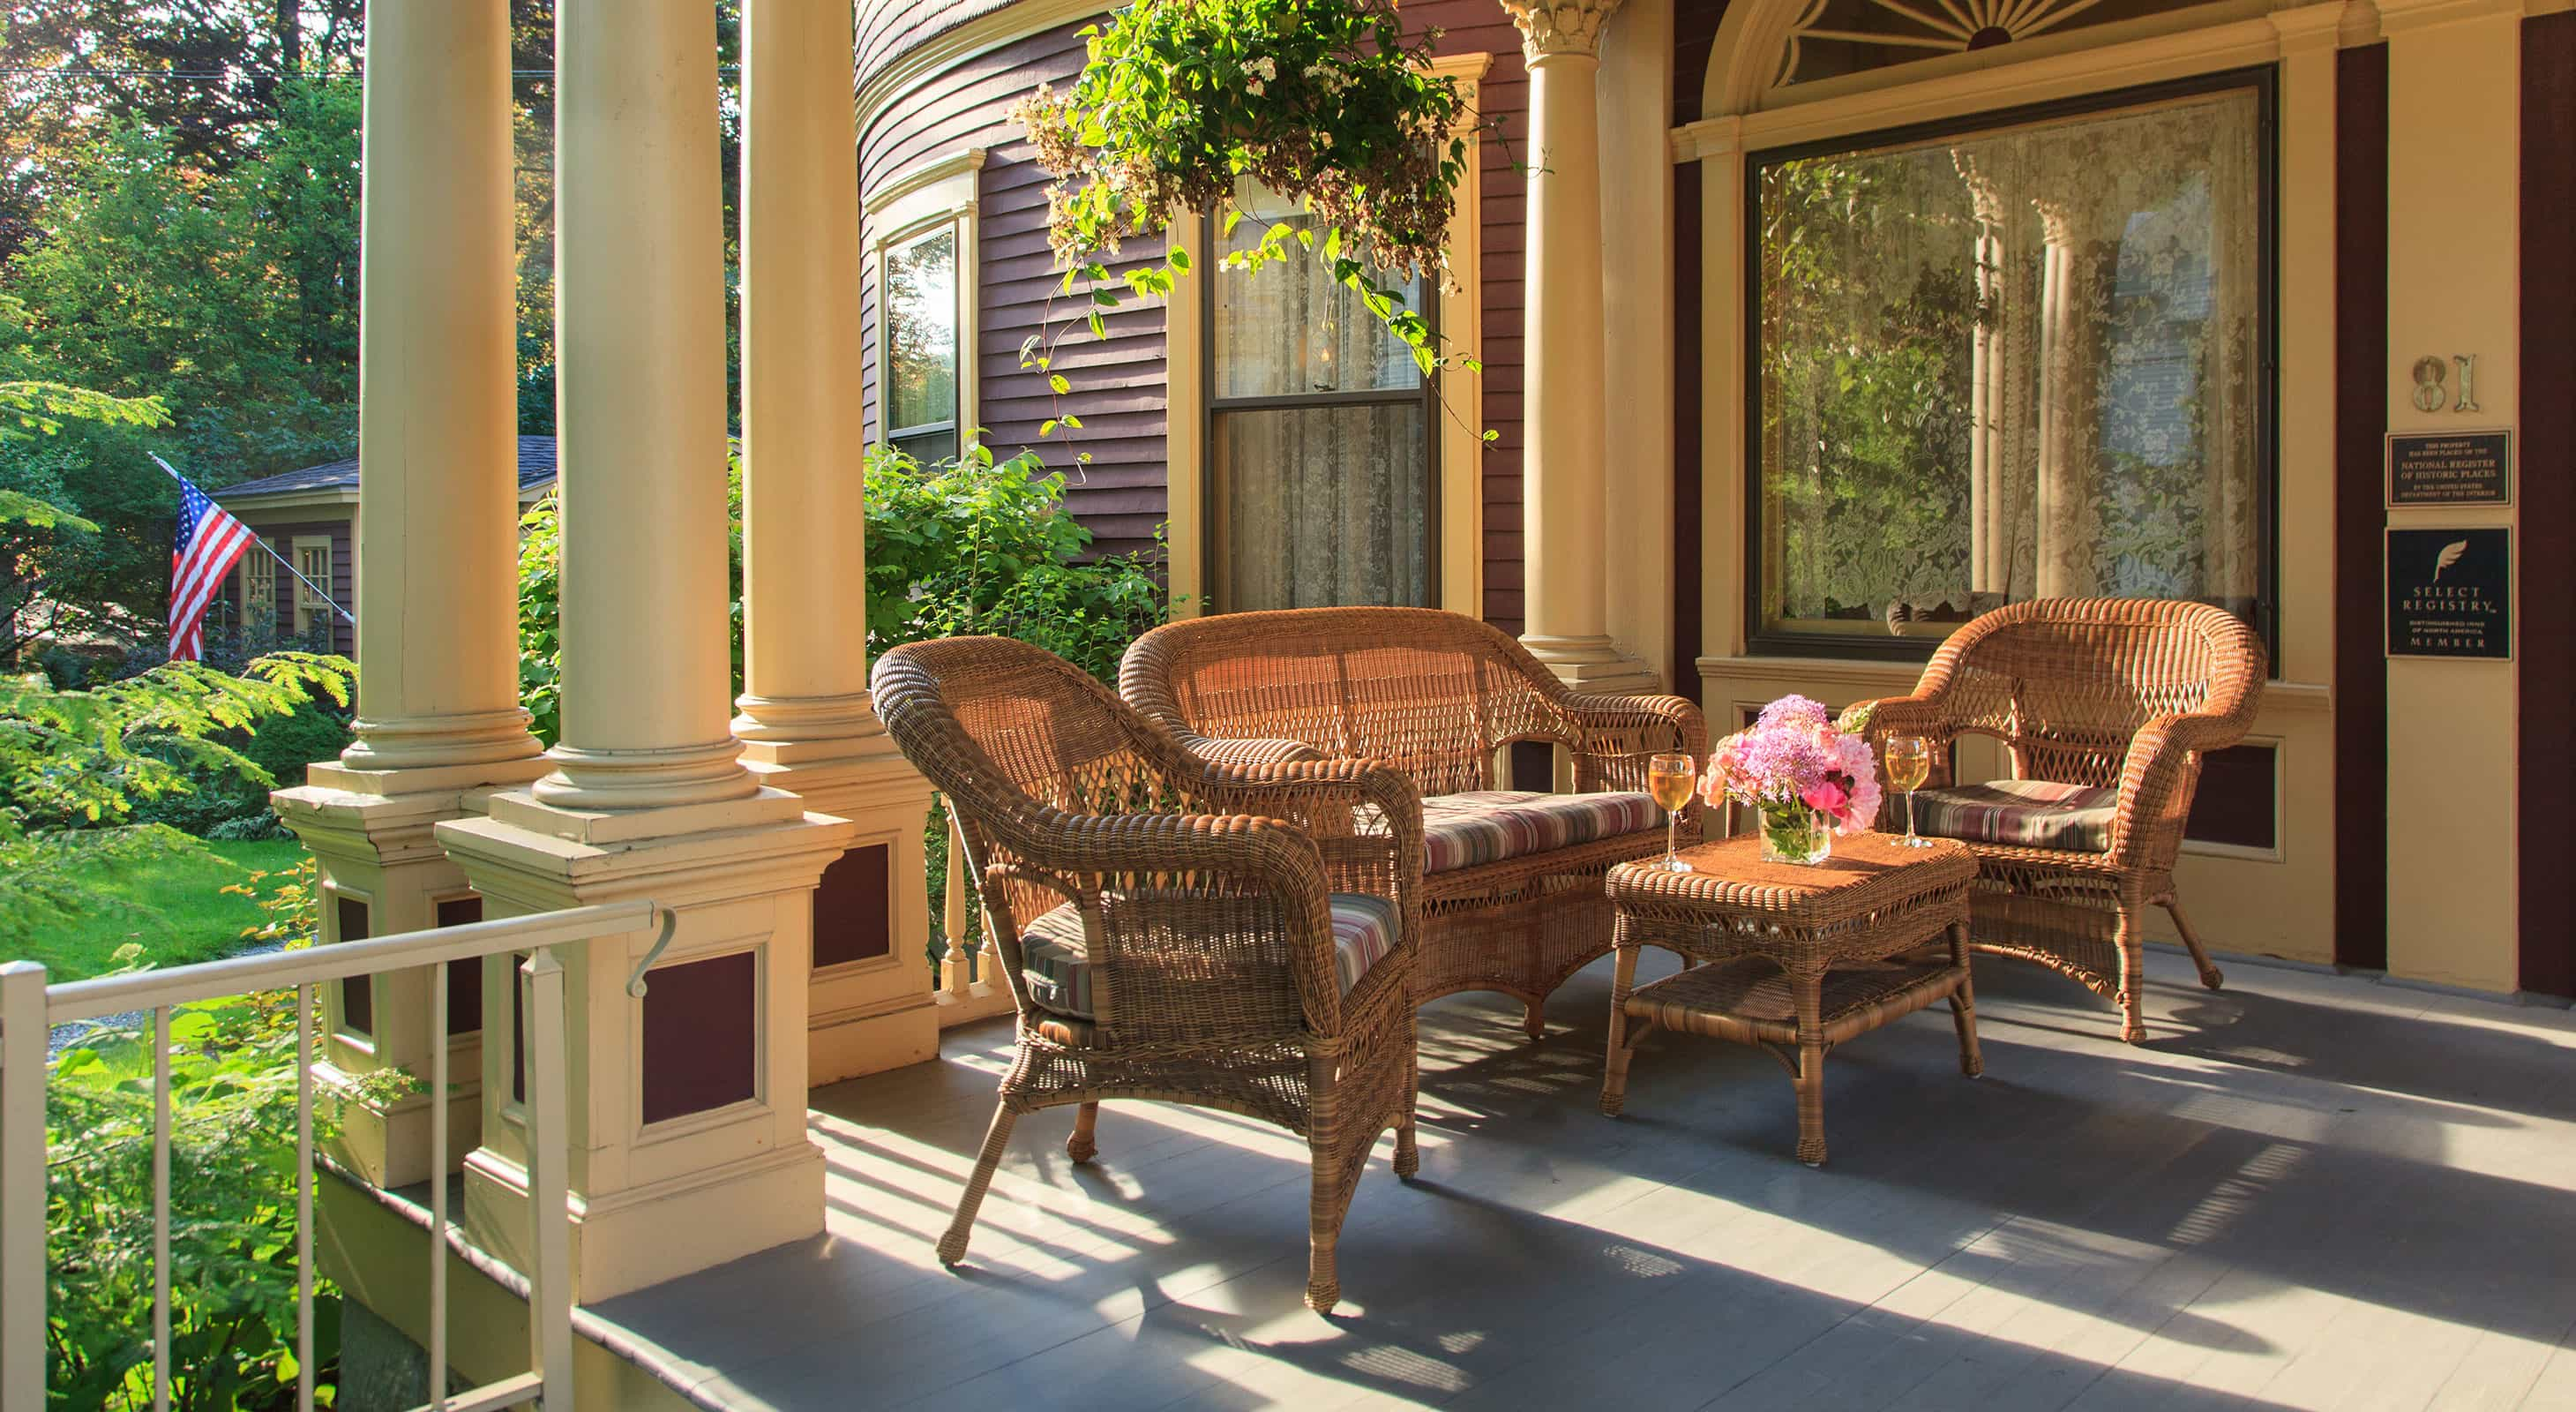 Sitting area outside the Berry Manor Inn